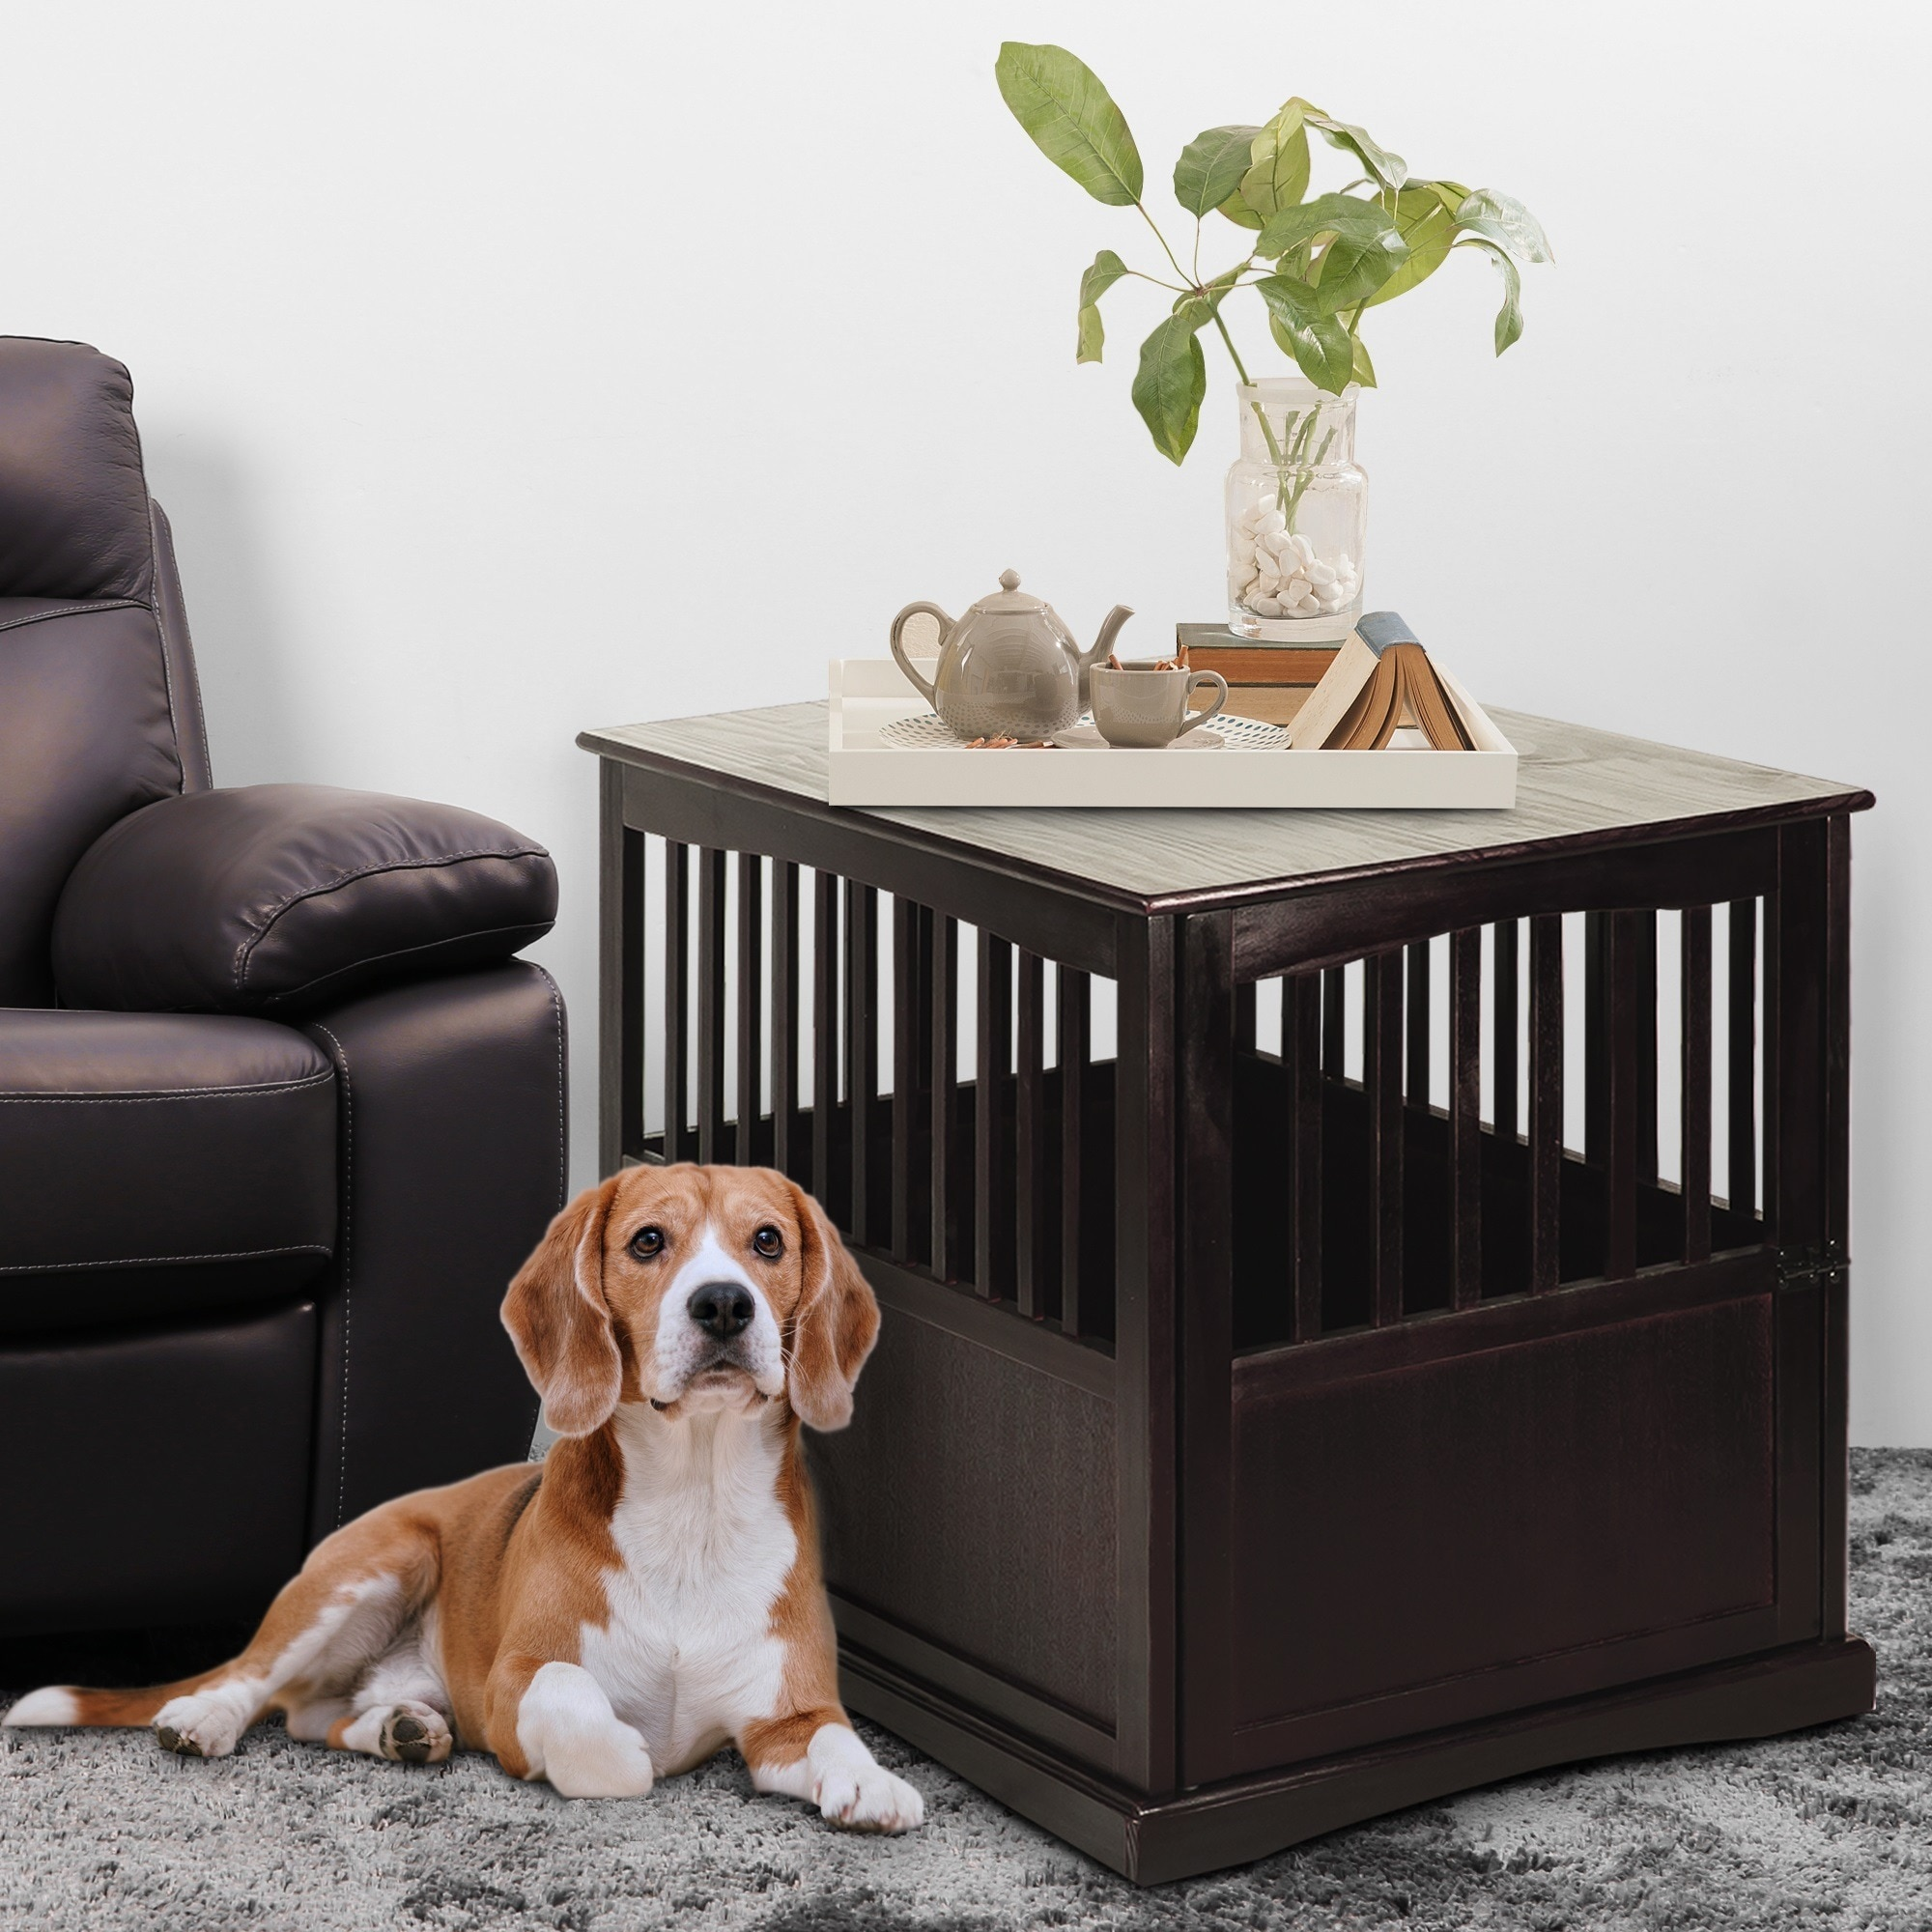 Wooden End Table and Pet Crate (Brown - Large)